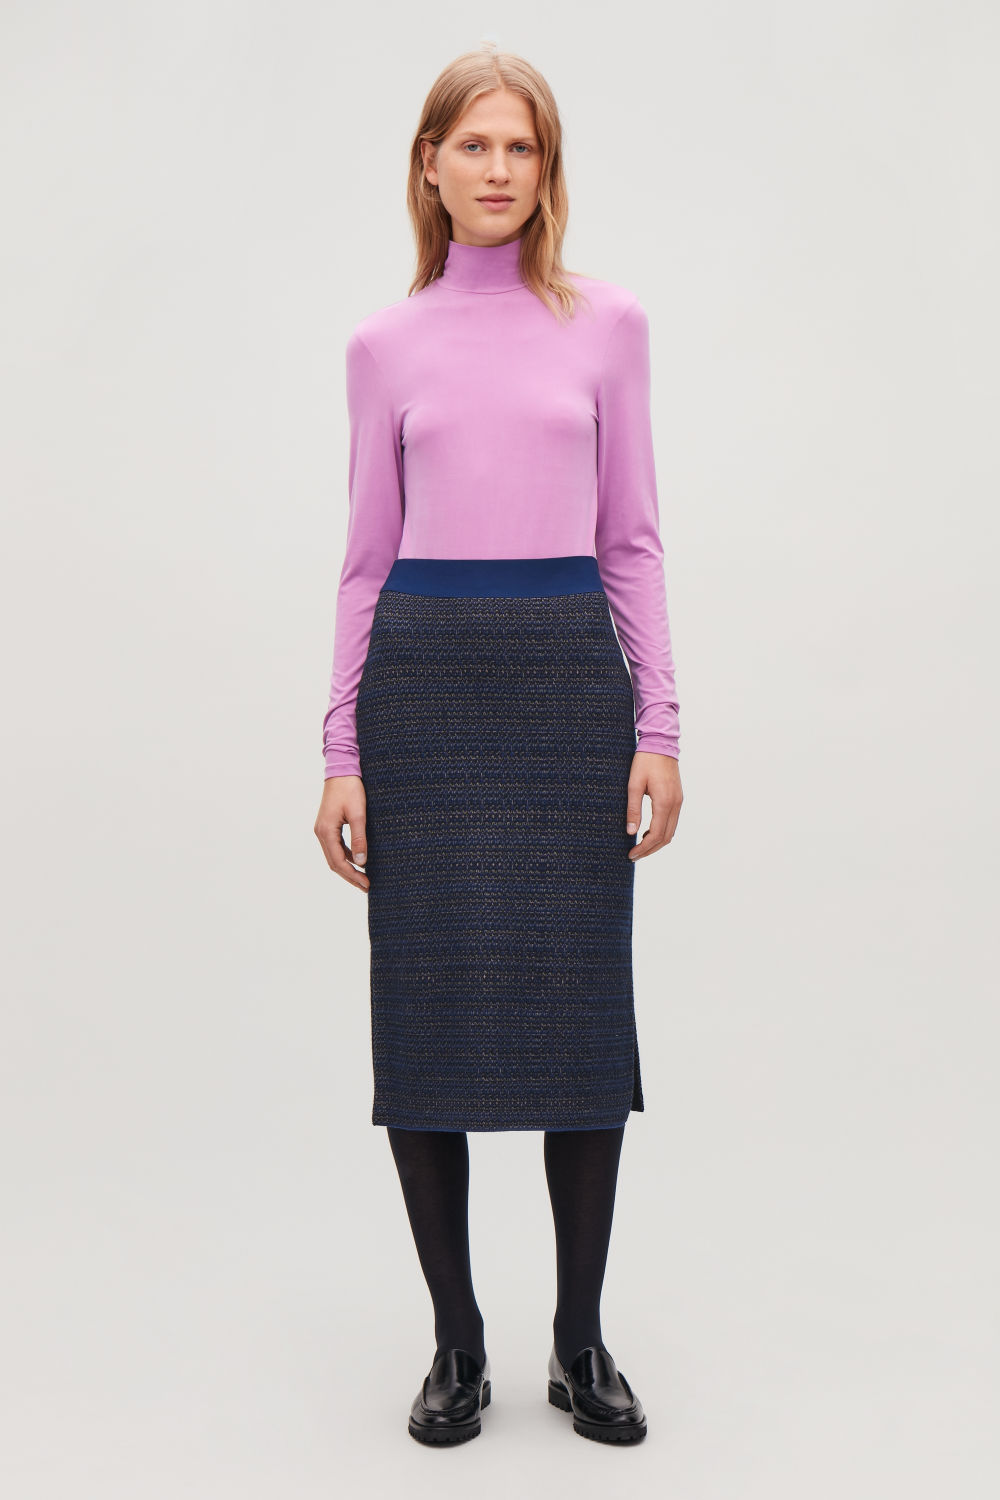 JACQUARD BOILED-WOOL KNIT SKIRT